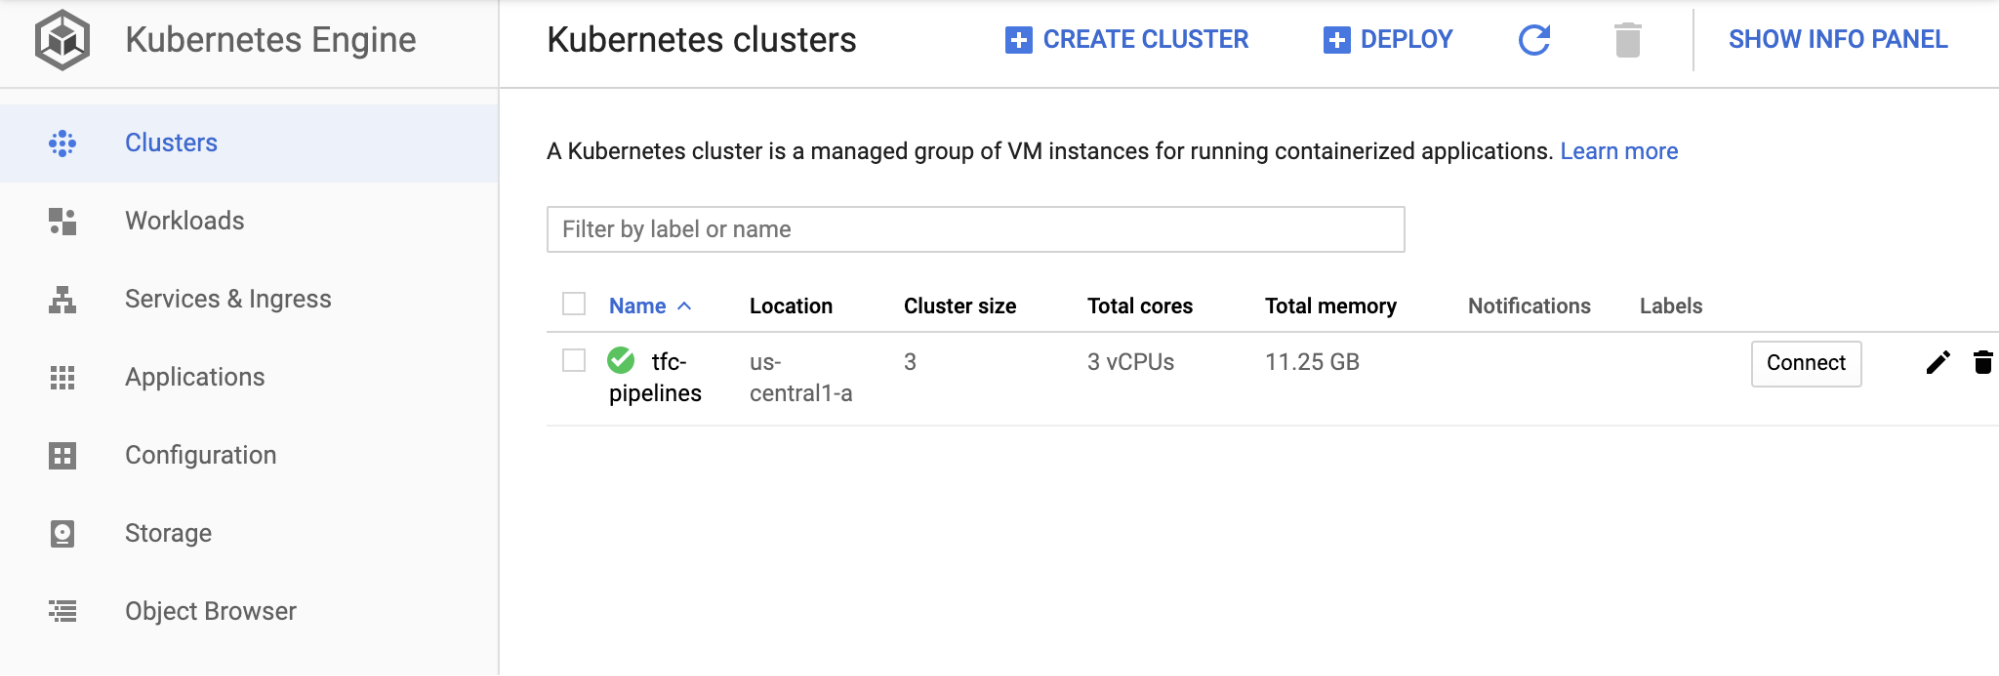 Google Cloud Kubernetes dashboard showing a GKE cluster named `tfc-pipelines` with 3 nodes